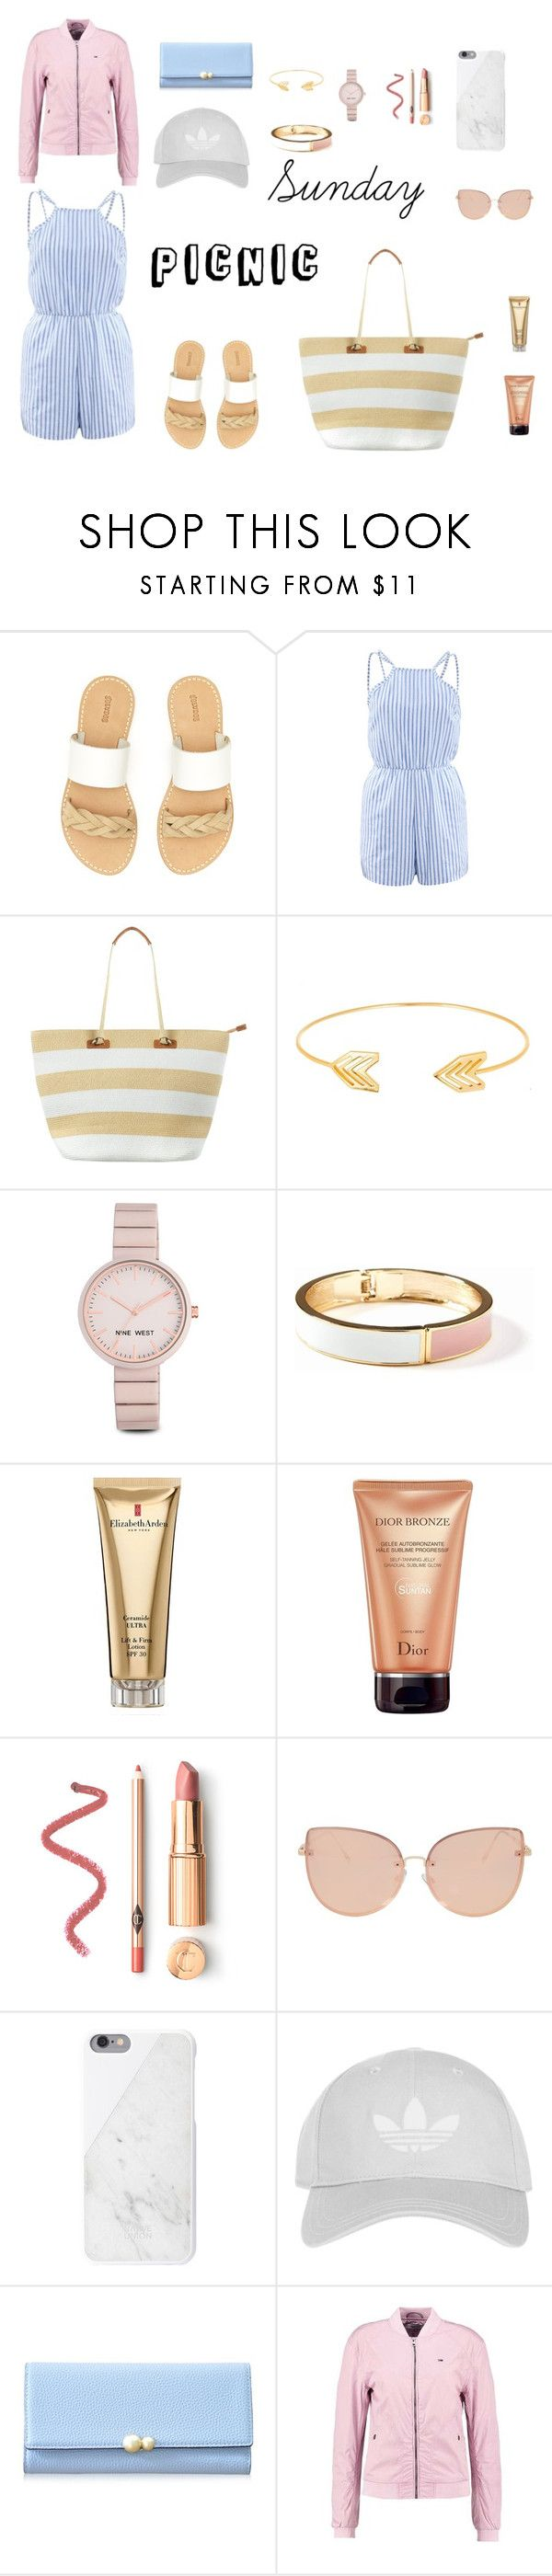 """""""Sunday Picnic Outfit"""" by annaschaf on Polyvore featuring Soludos, WithChic, Phase Eight, Lord & Taylor, Nine West, Old Navy, Elizabeth Arden, Christian Dior, Topshop and Native Union"""